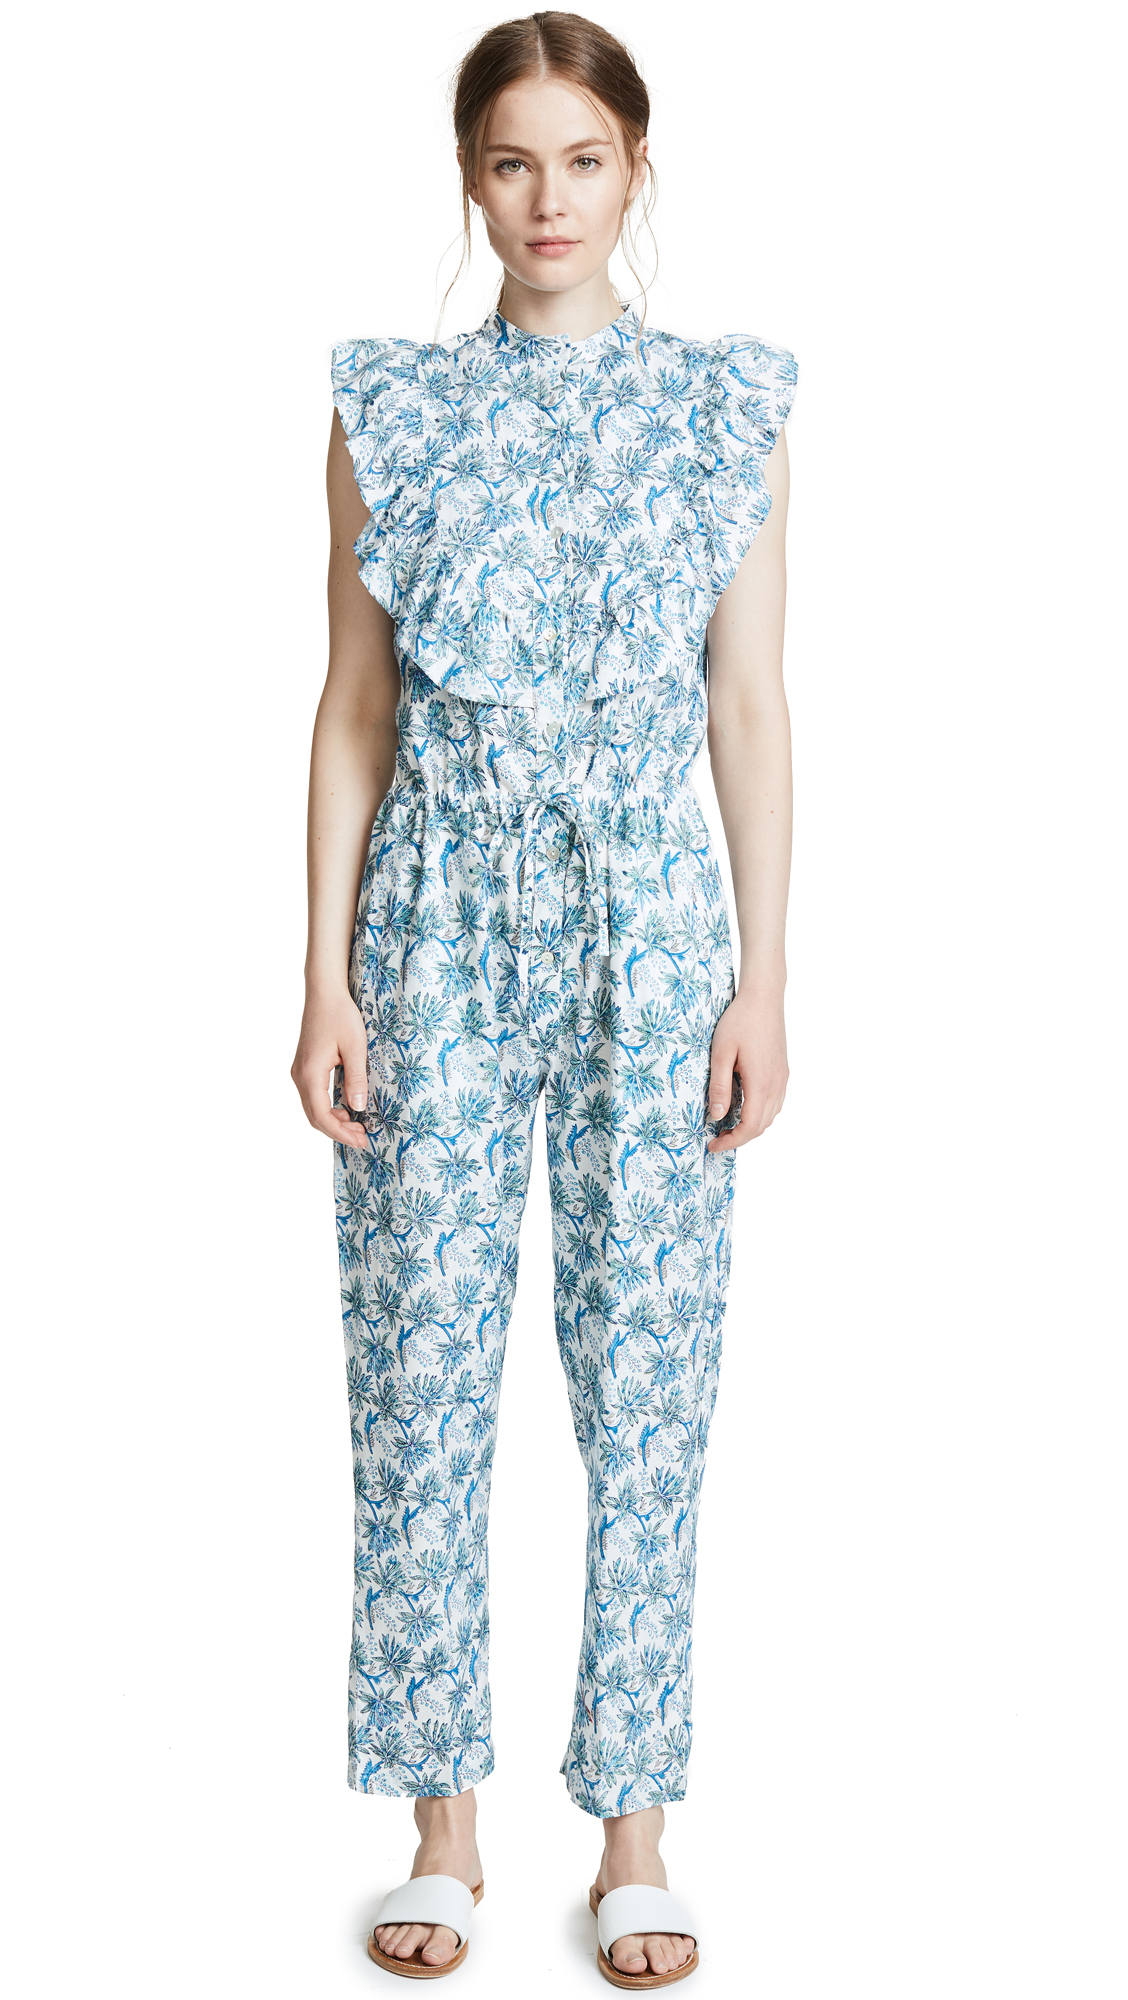 BANJANAN Rose Jumpsuit in Dandelion Cornflower